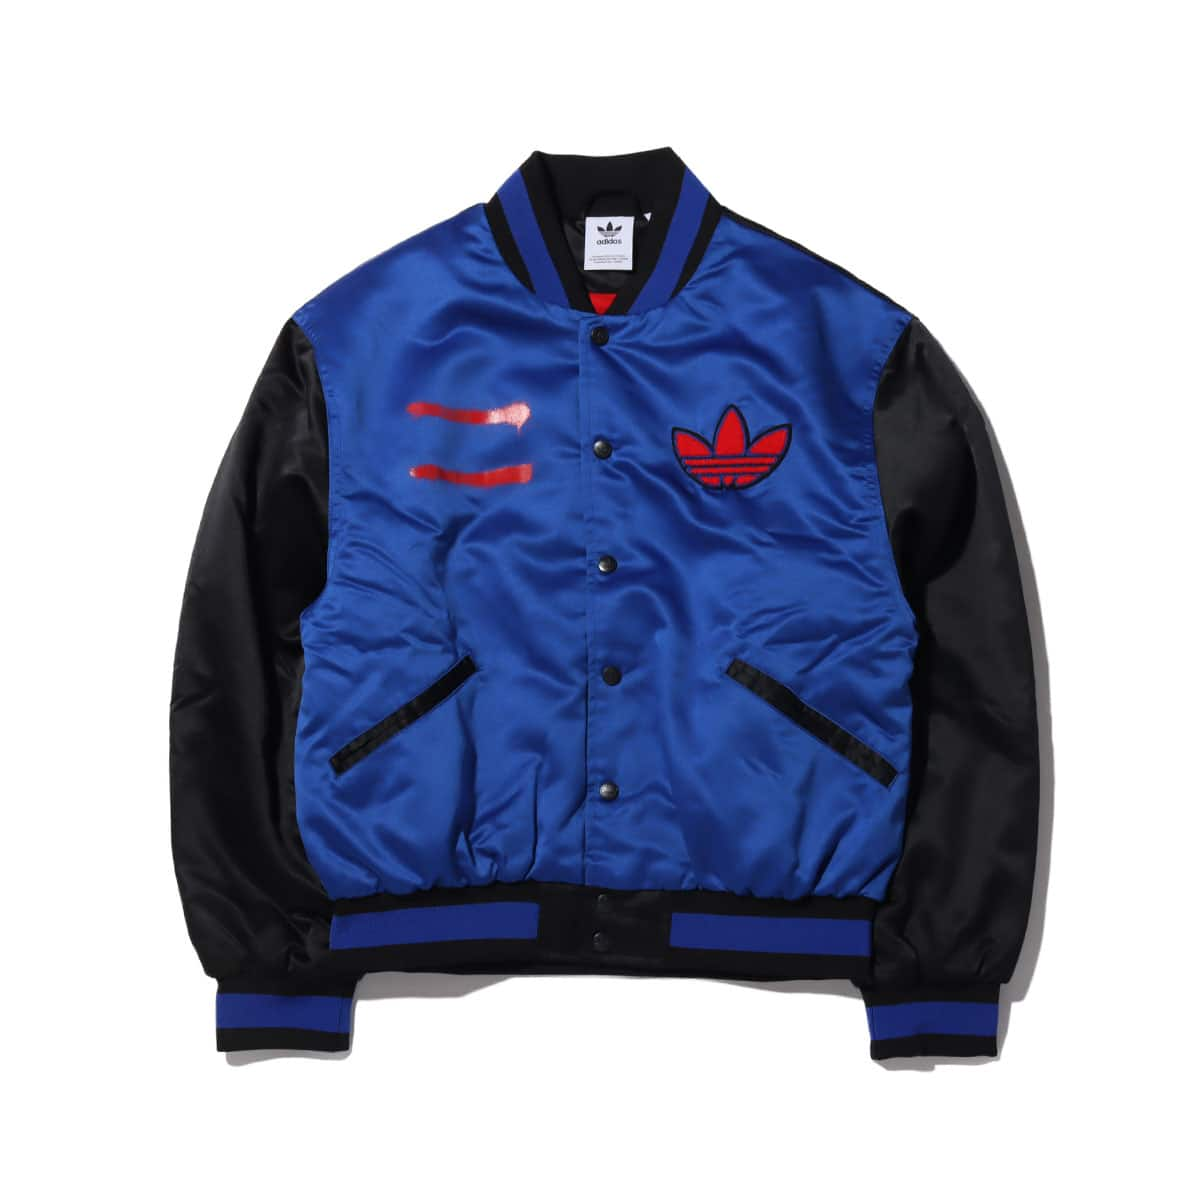 adidas RUN DMC VARSITY COLLEGE ROYAL/BLACK/WHITE/SCURLET 20SS-S_photo_large